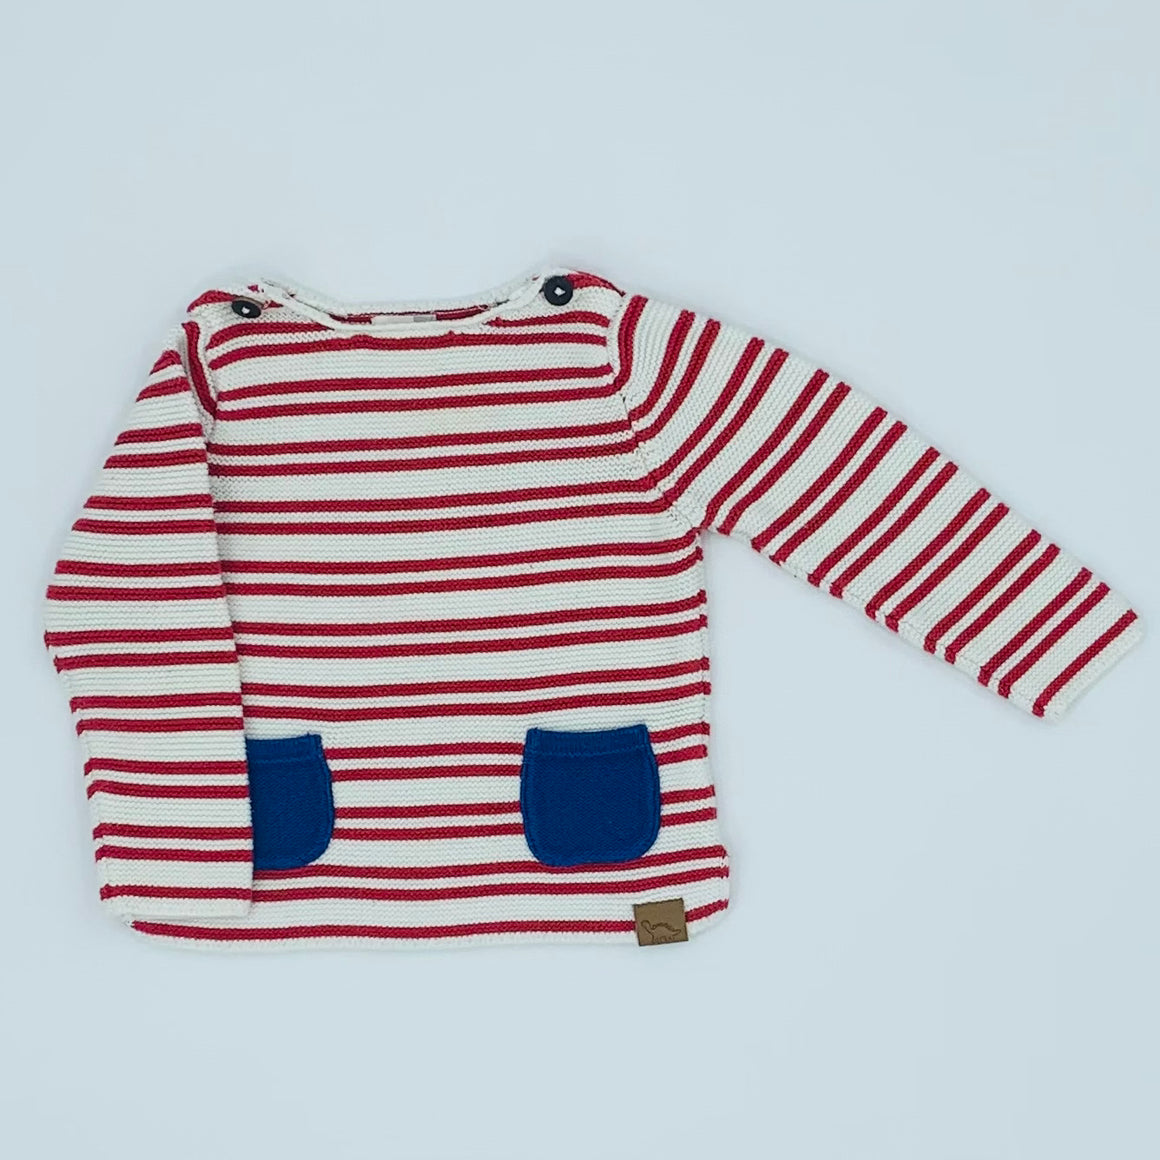 Hardly Worn John Lewis red striped knit jumper size 9-12 months